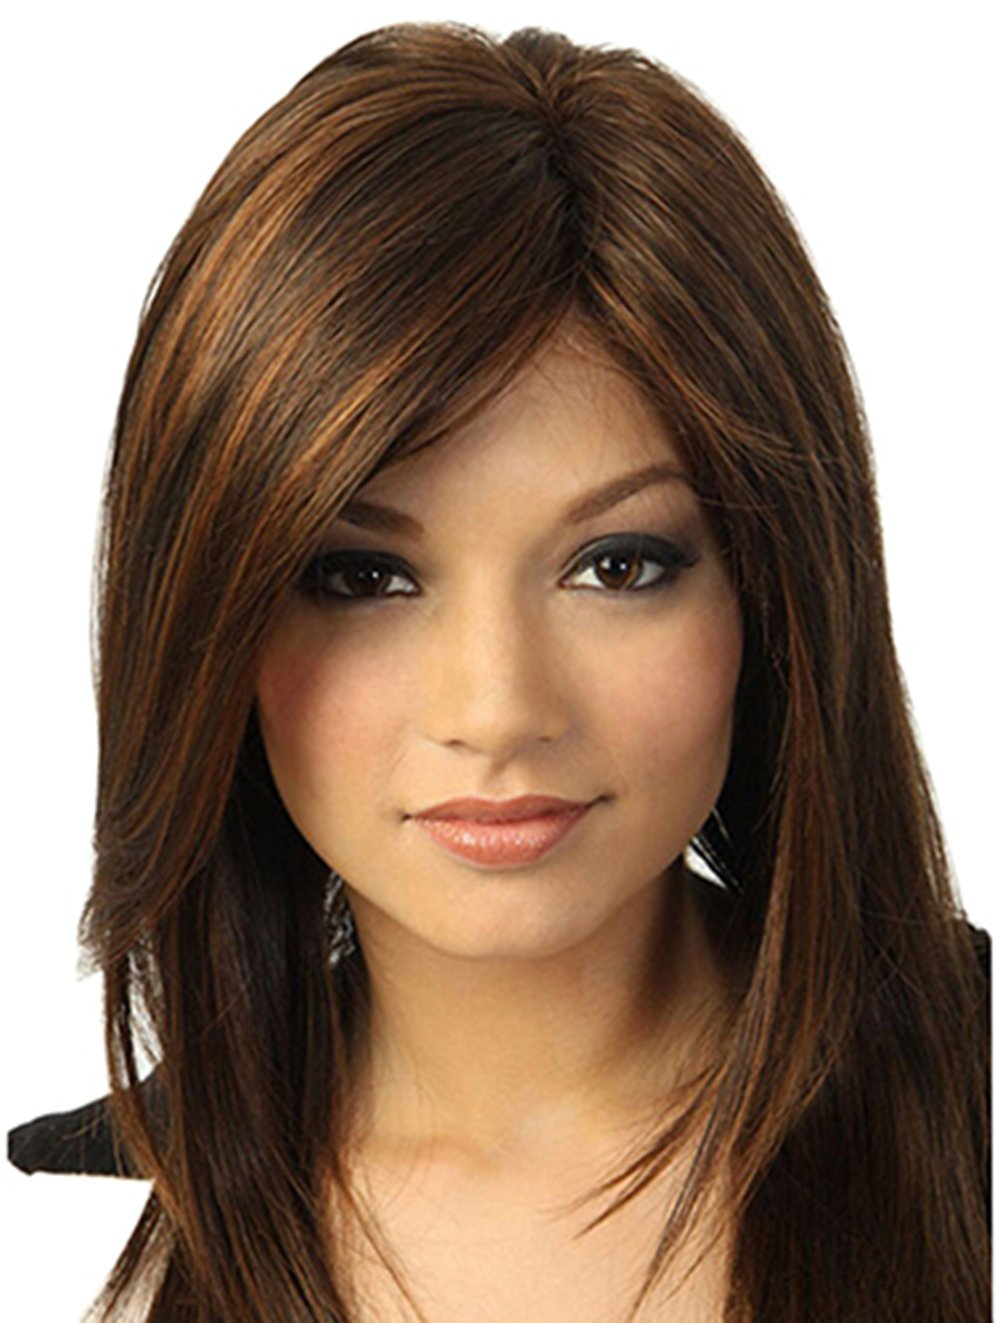 Brown Medium Length Straight Synthetic Hair Wigs For Women Long Hair Brown Party Daily Costume Wig With Bangs Beauty